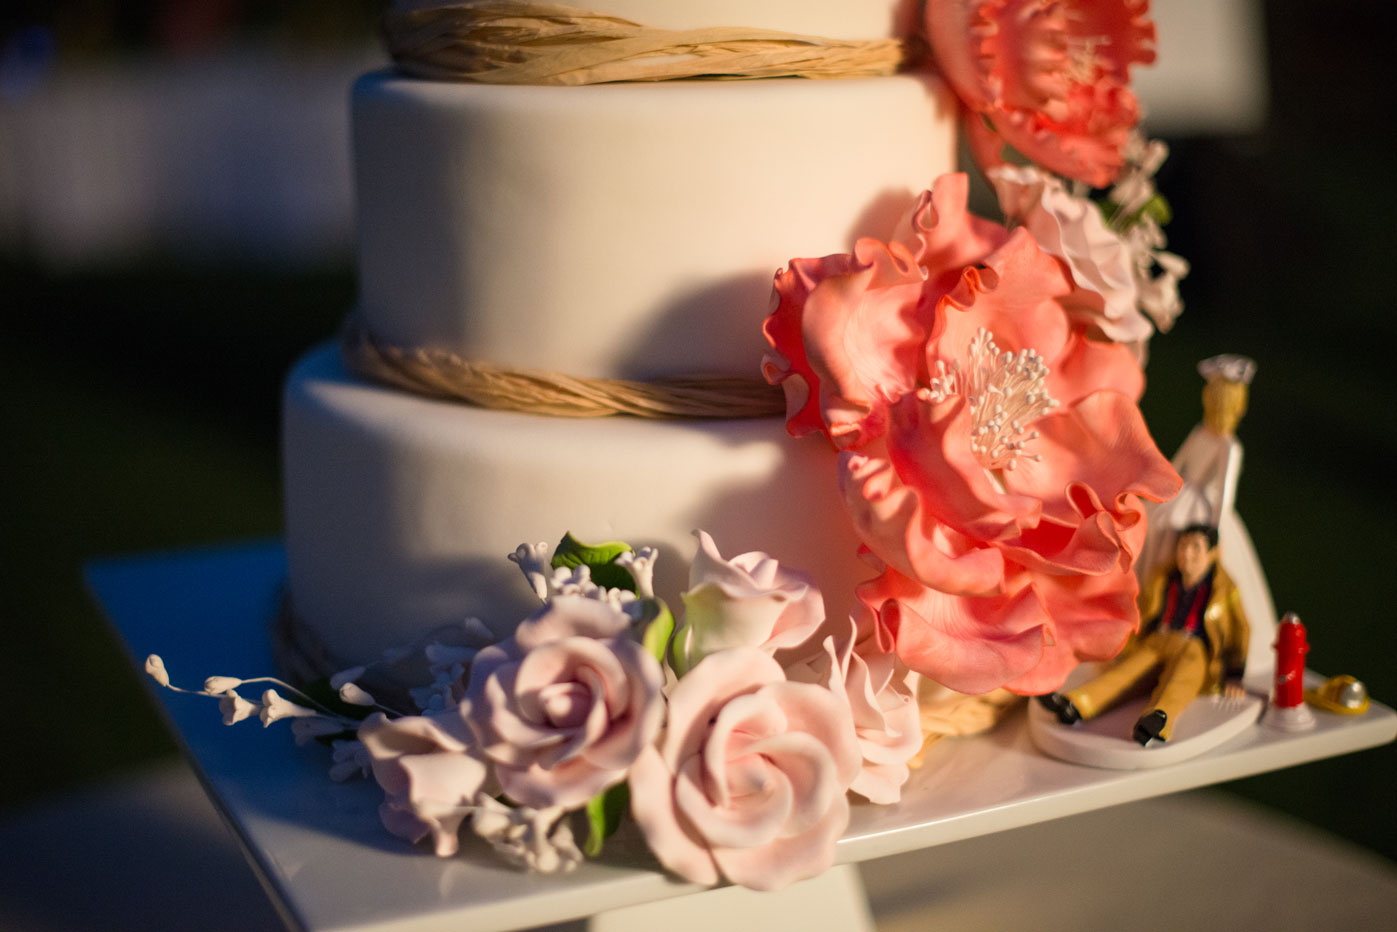 J Barry Designs Cake with coral flowers1